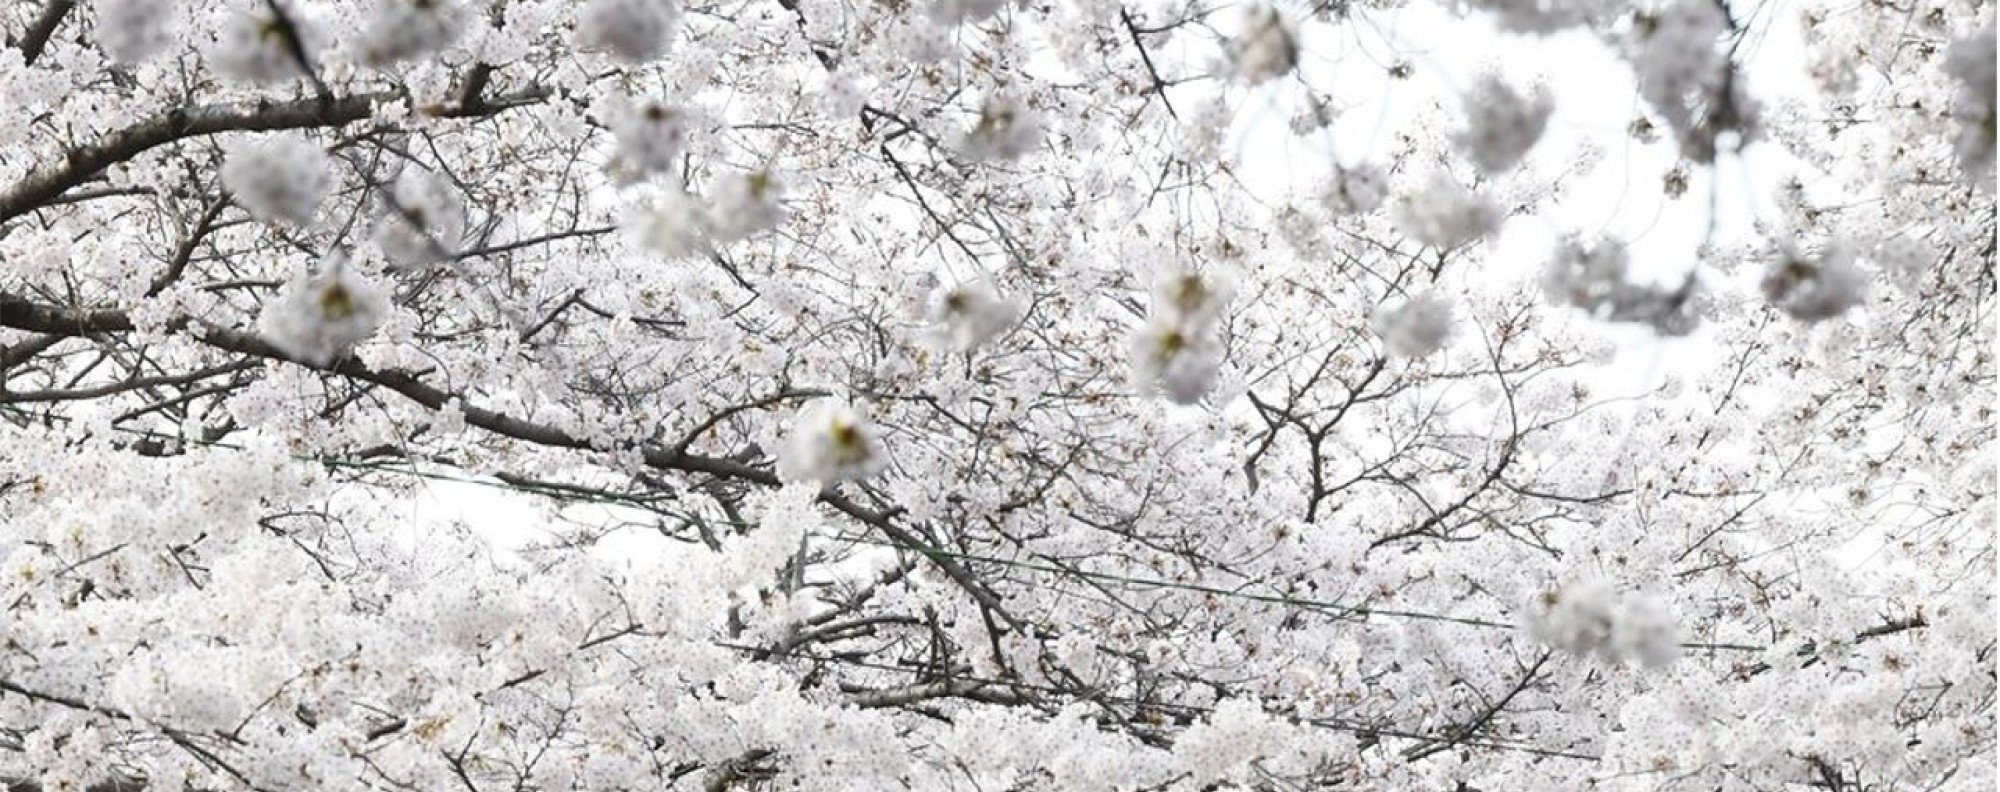 South Koreas Biggest Cherry Blossom Festival Is In Full Bloom